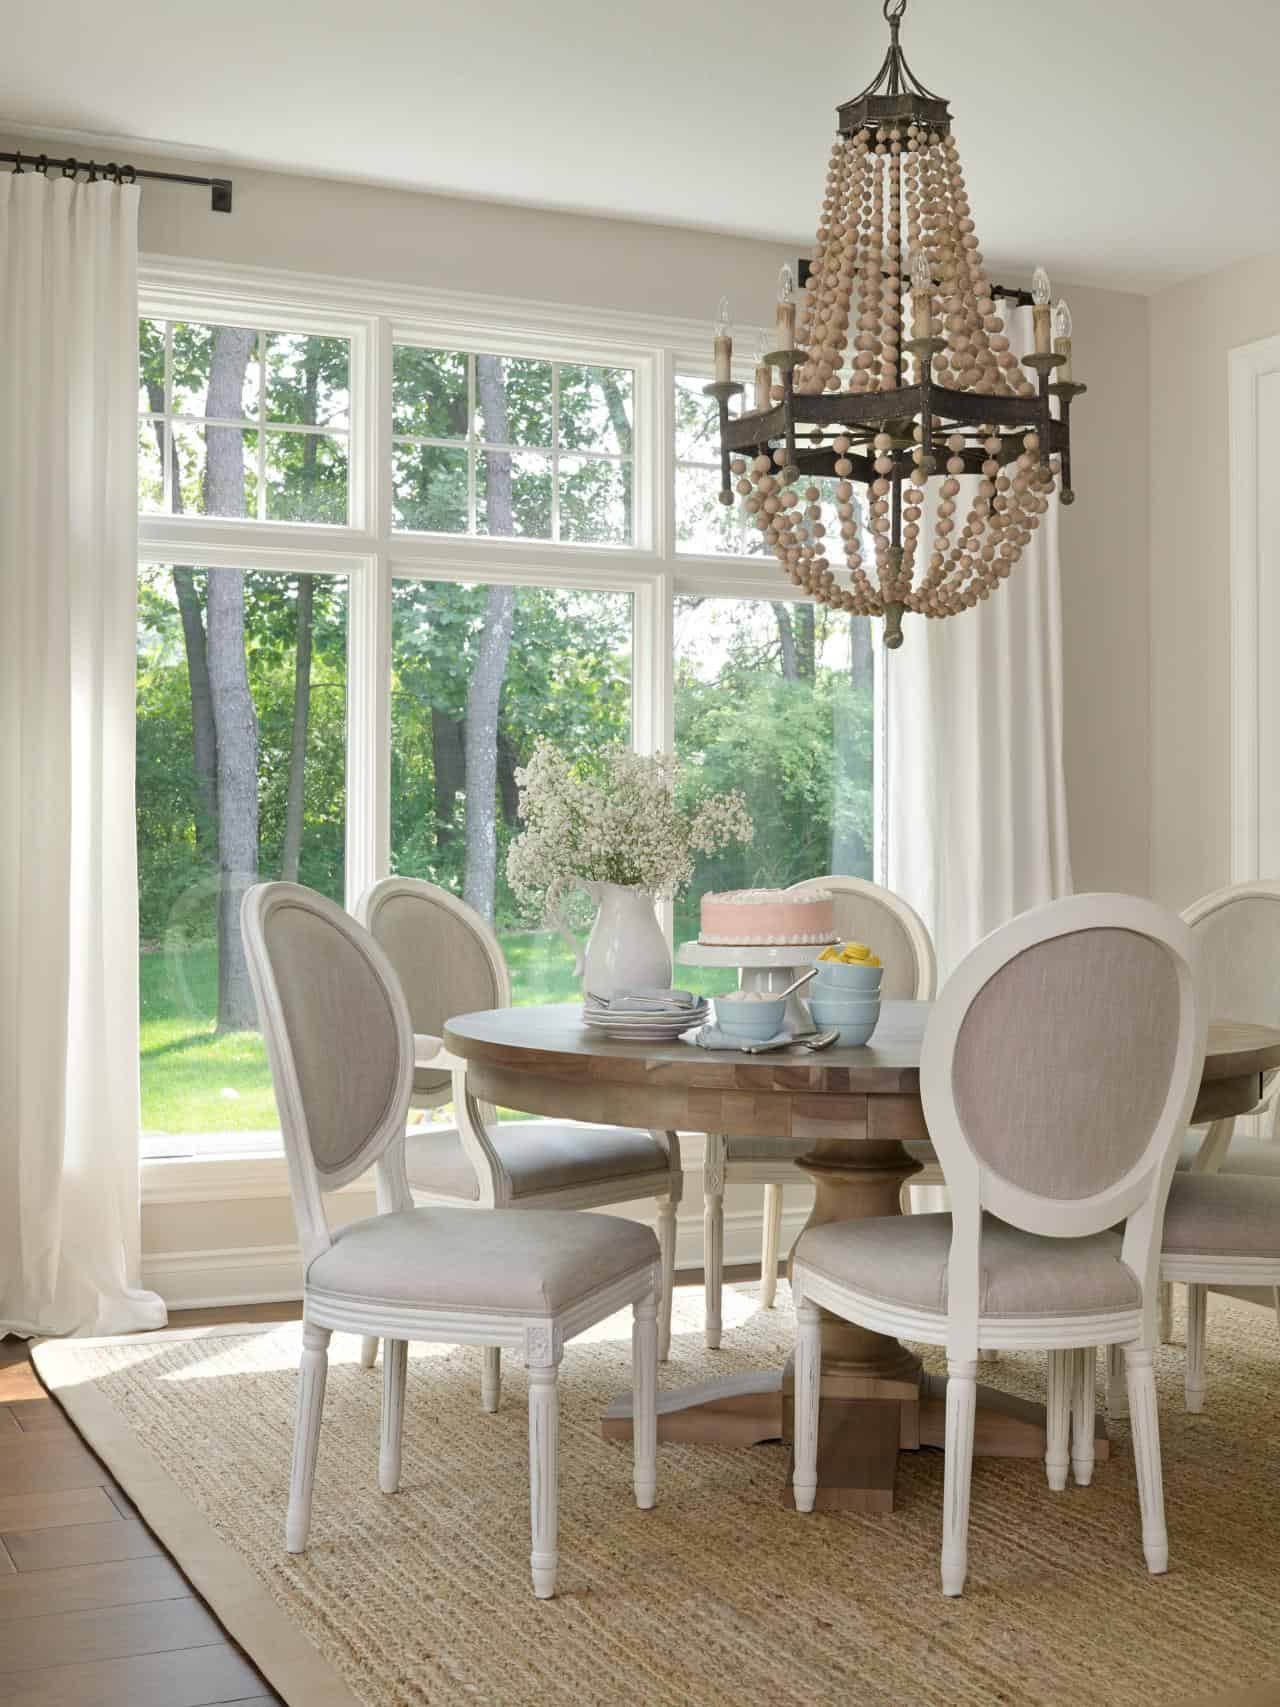 Girlish Breakfast Nook